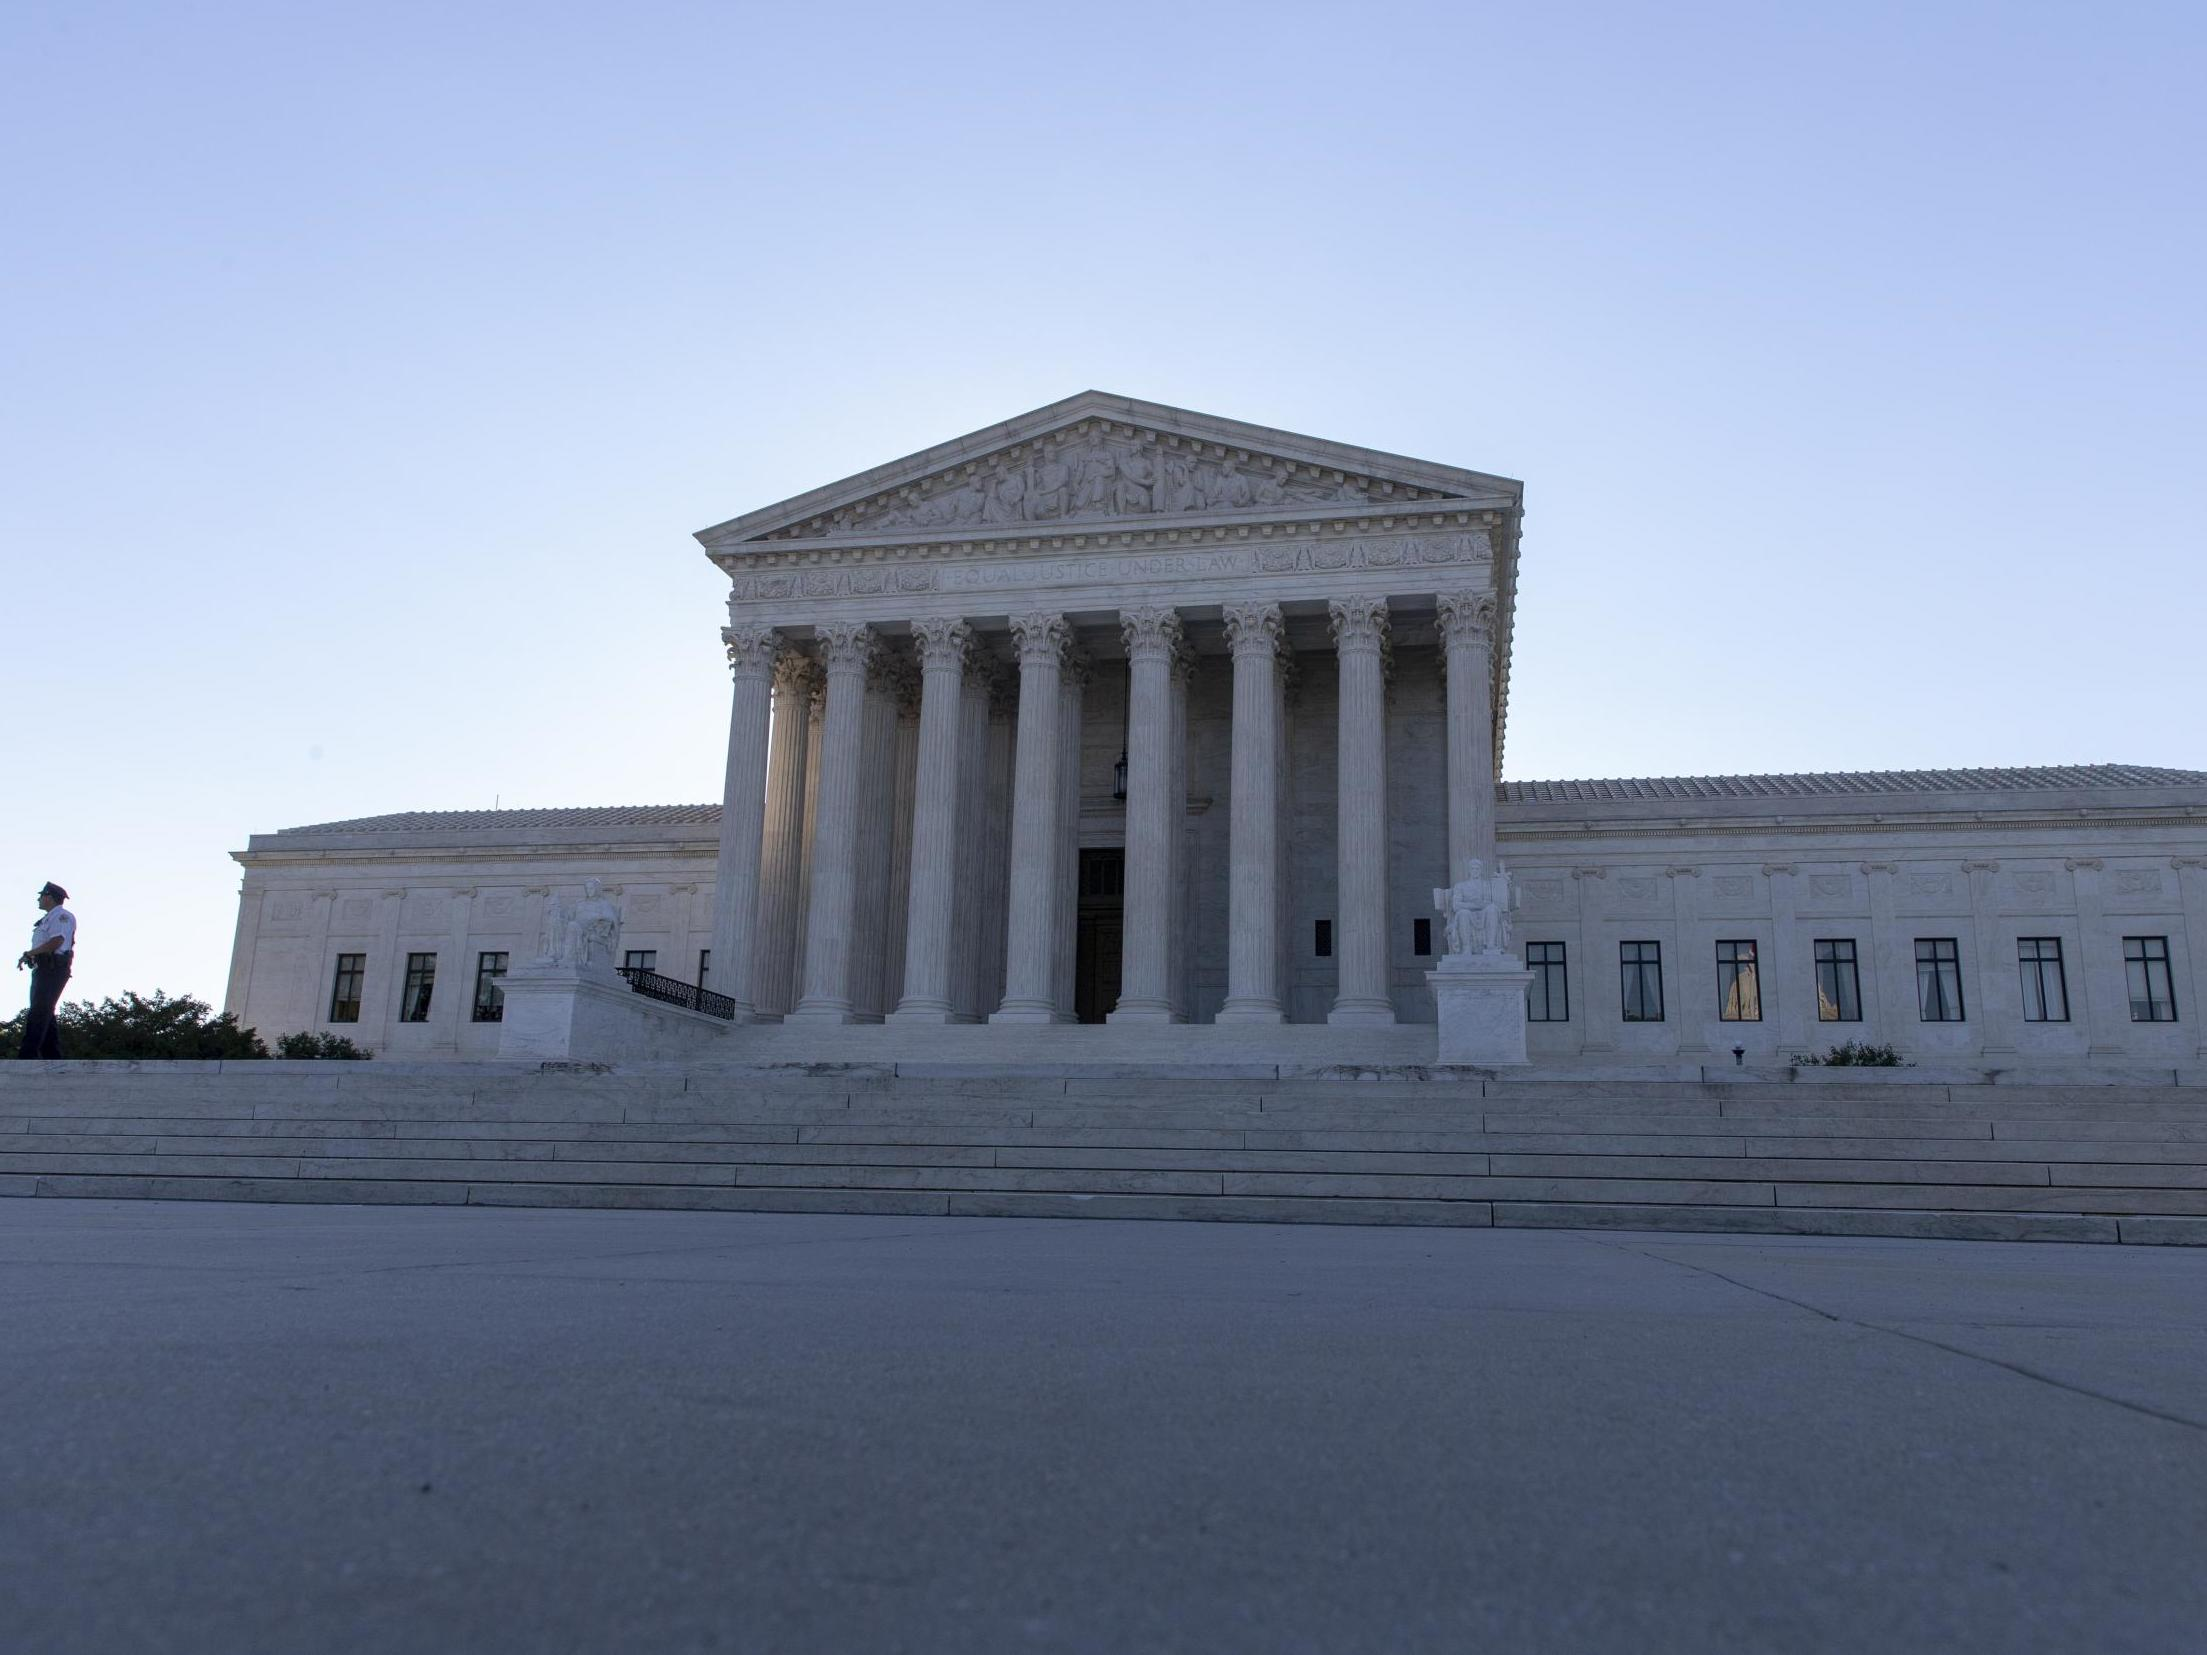 US Supreme Court - latest news, breaking stories and comment